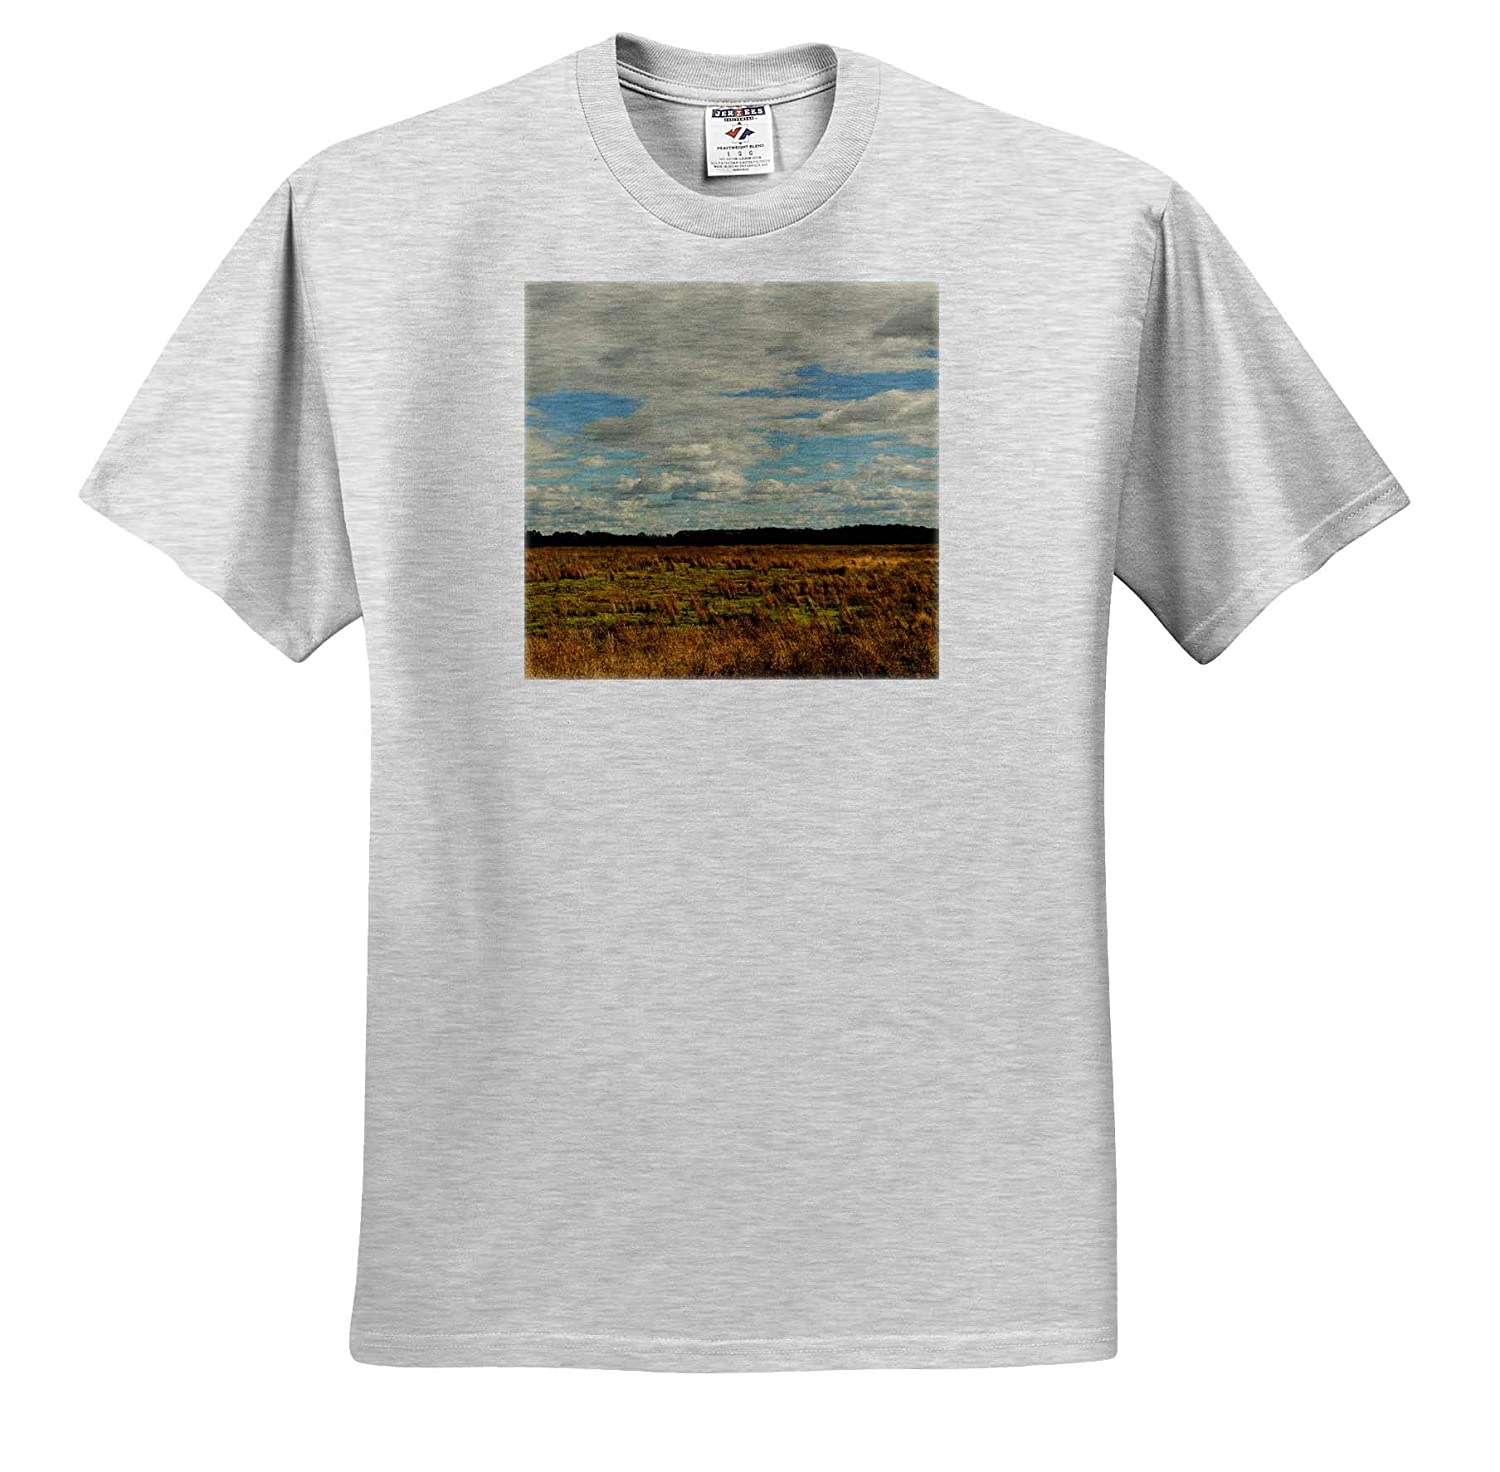 Photograph of an Open Field in South Carolina on a Cloudy Day - T-Shirts Nature 3dRose Stamp City